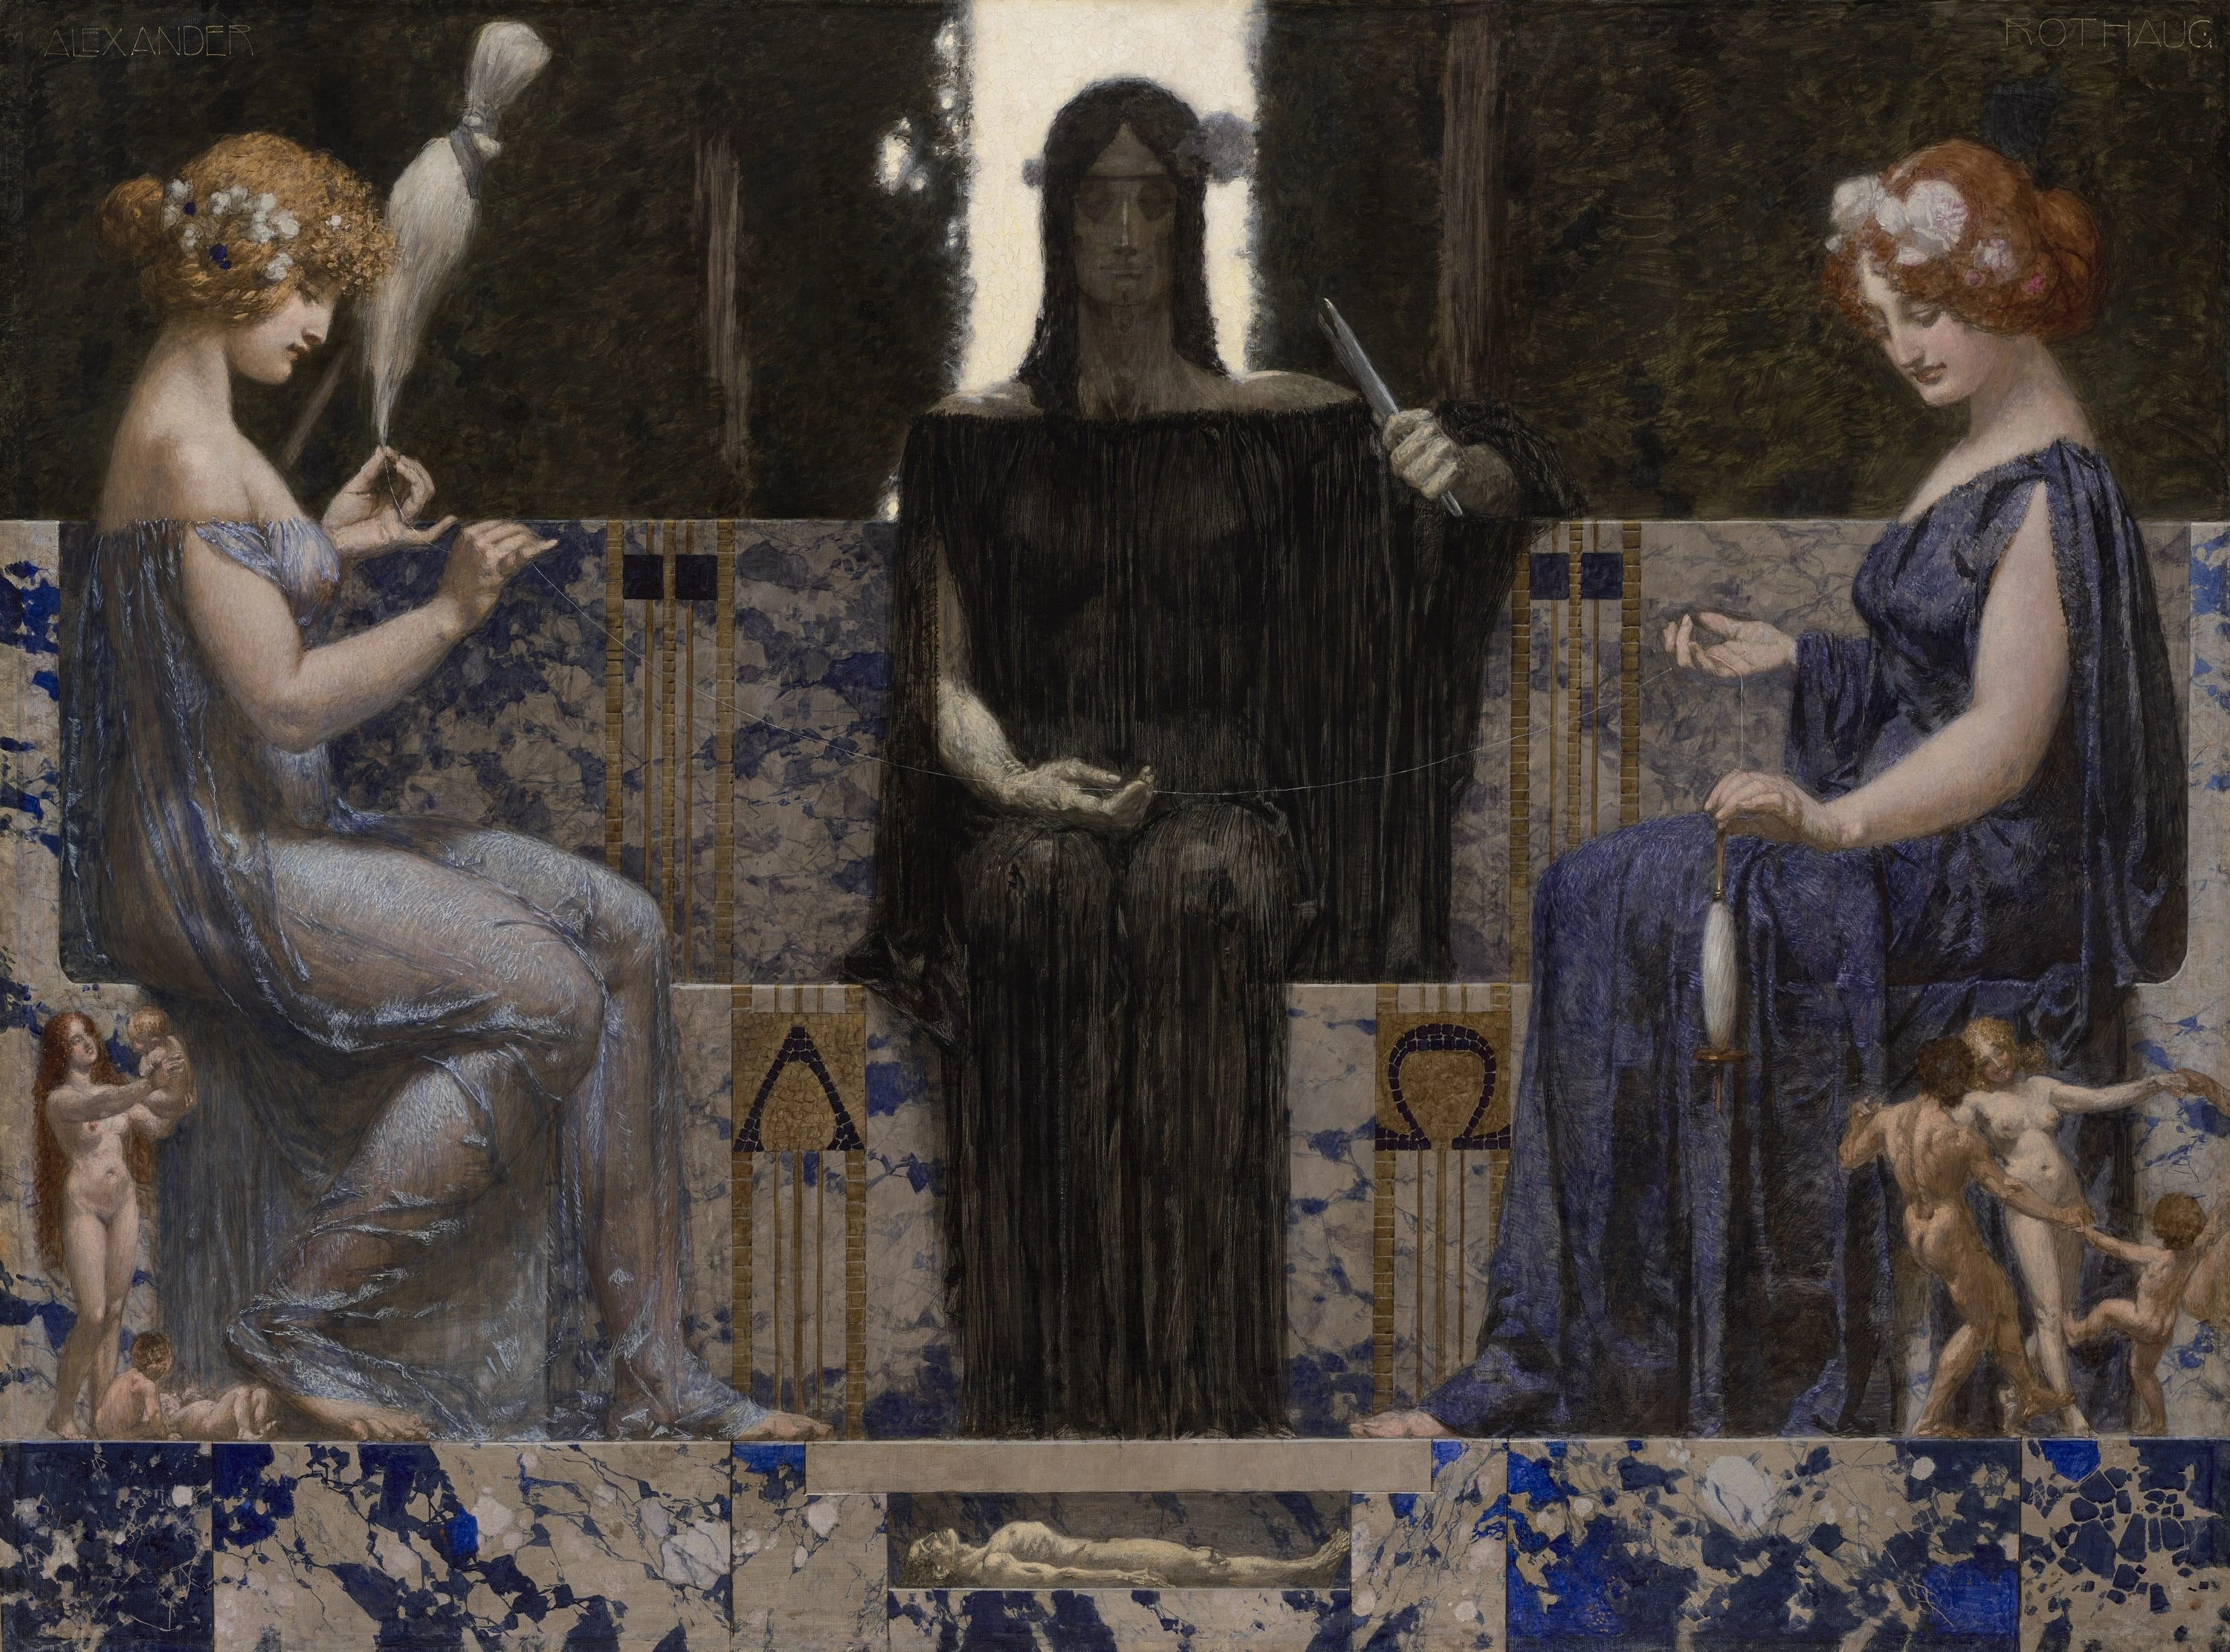 An image of the three Fates.